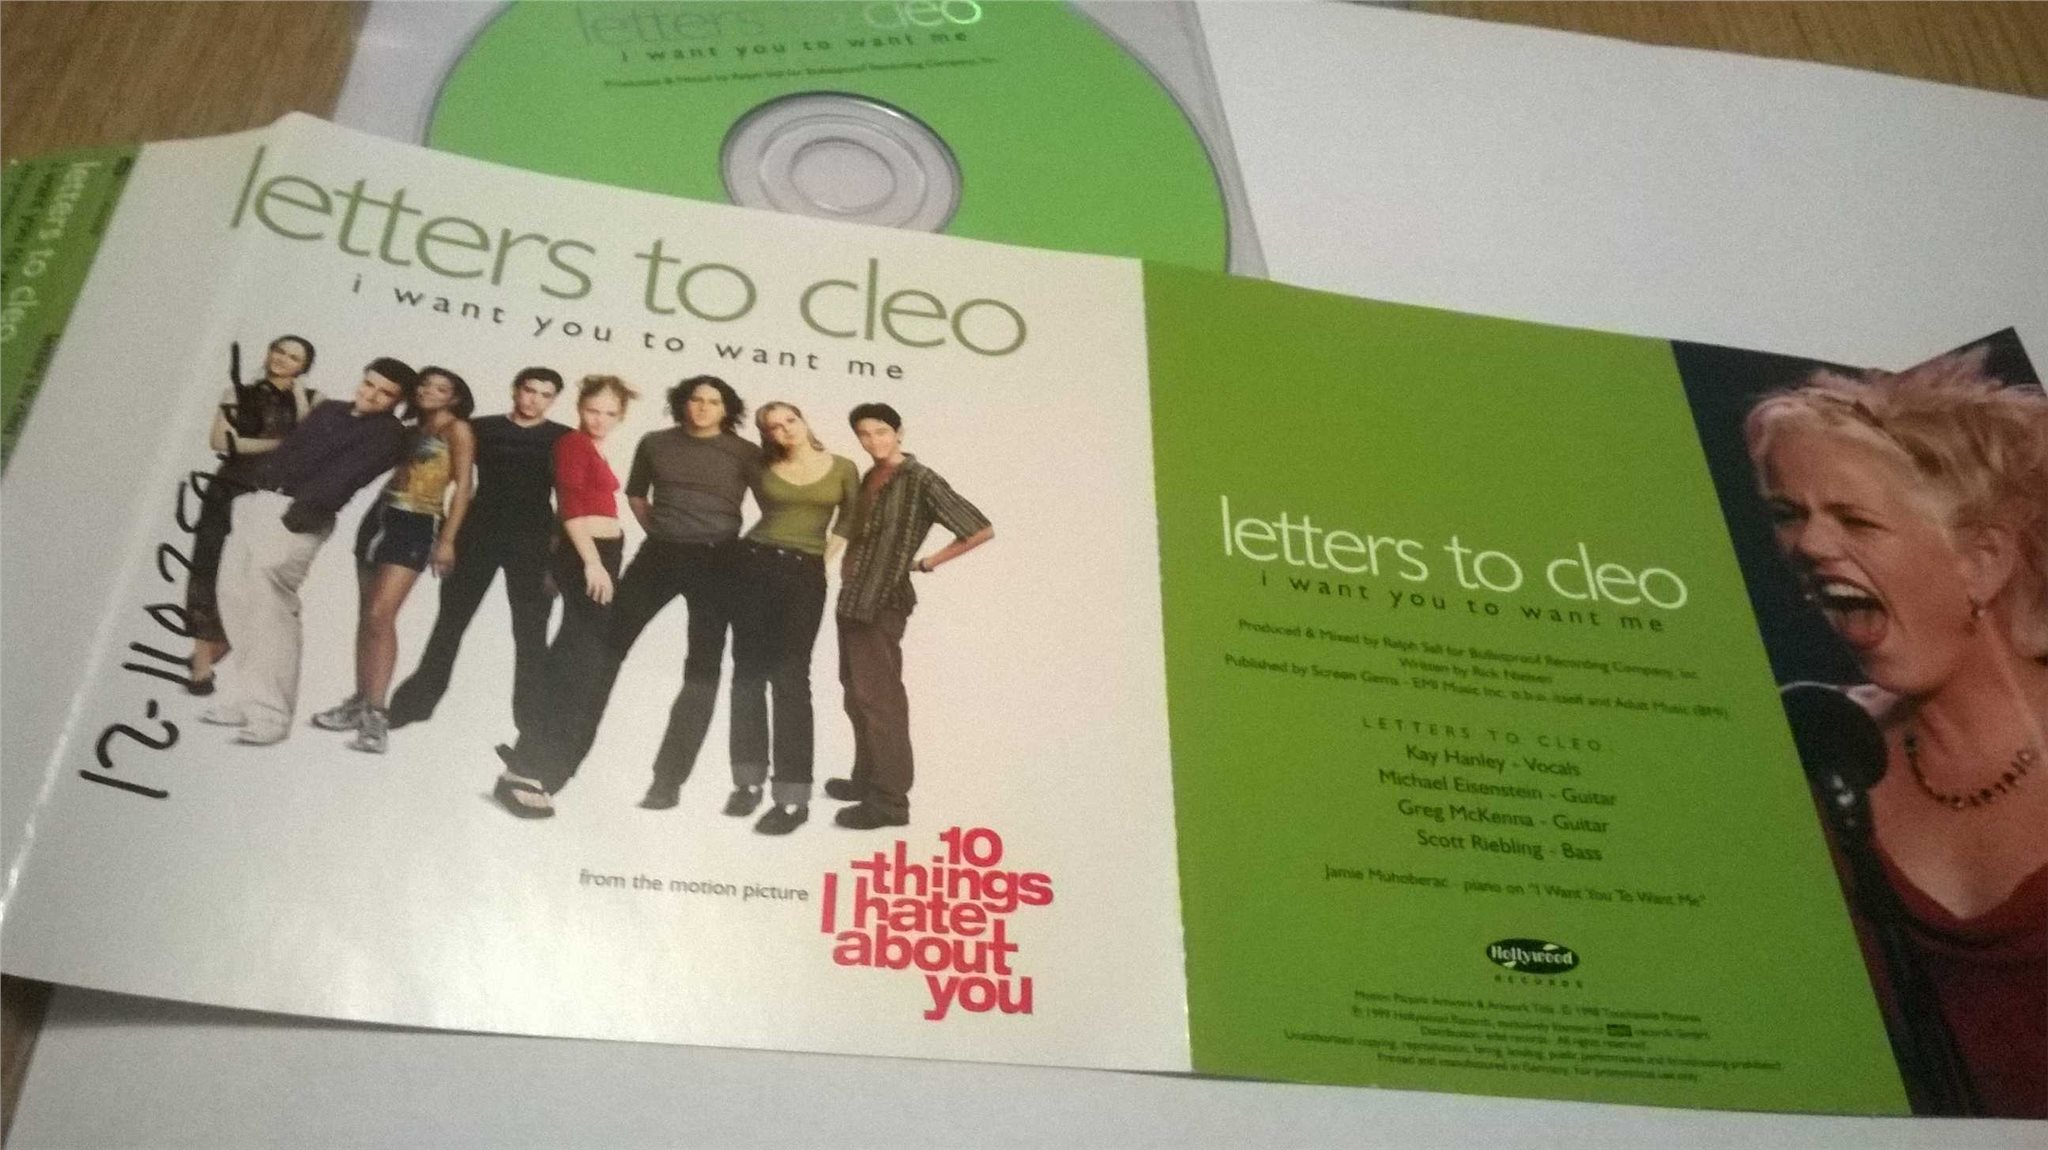 Letters To Cleo - I Want You To Want Me, single CD, promo